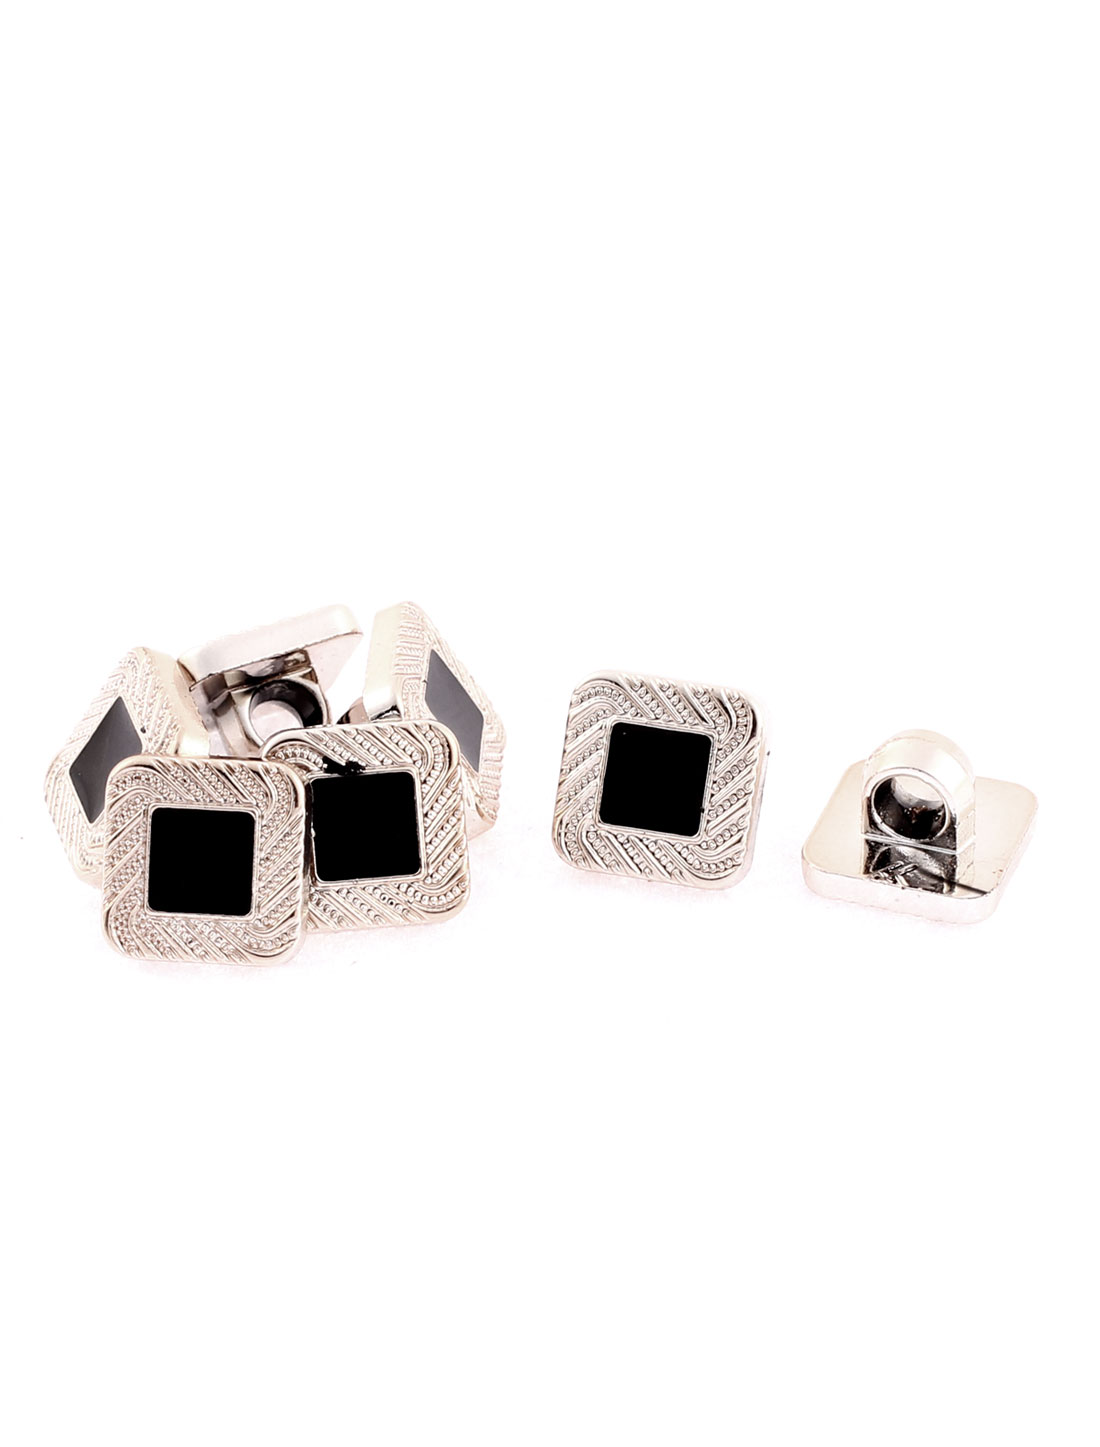 Square Shaped Shirt Coat Clothes Buttons 10mm x 10mm 7Pcs